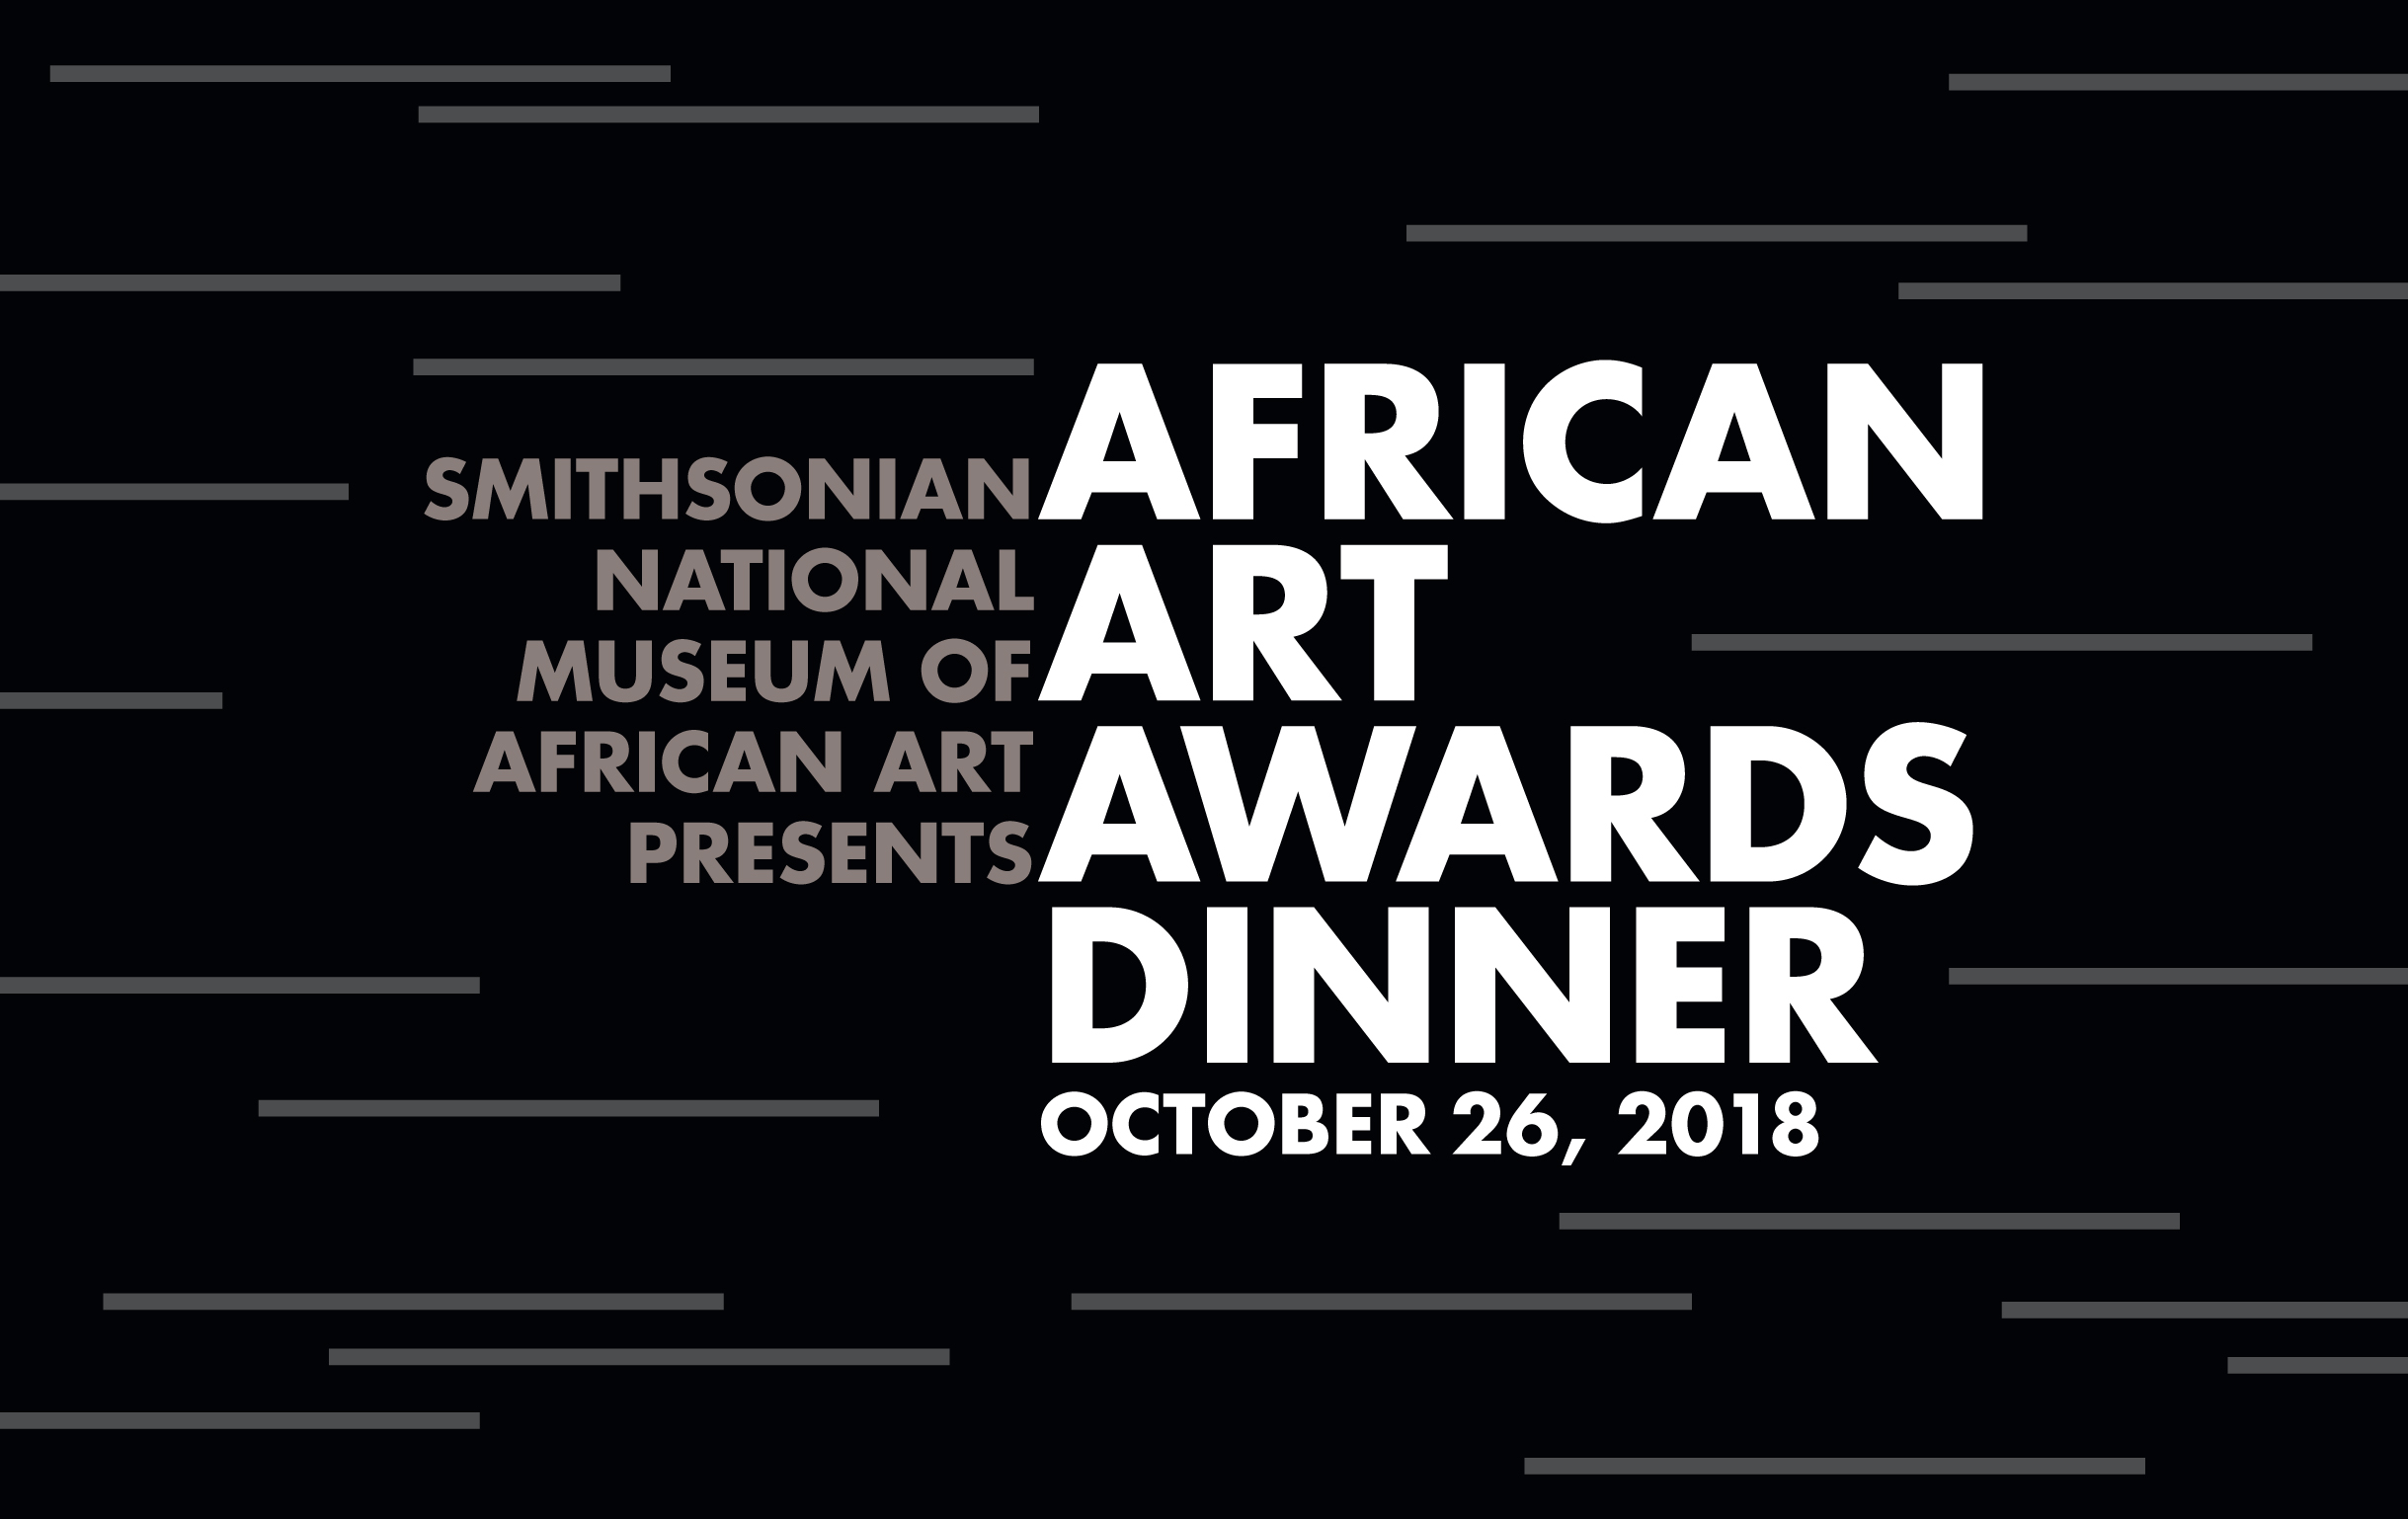 2018 African Arts Awards Dinner